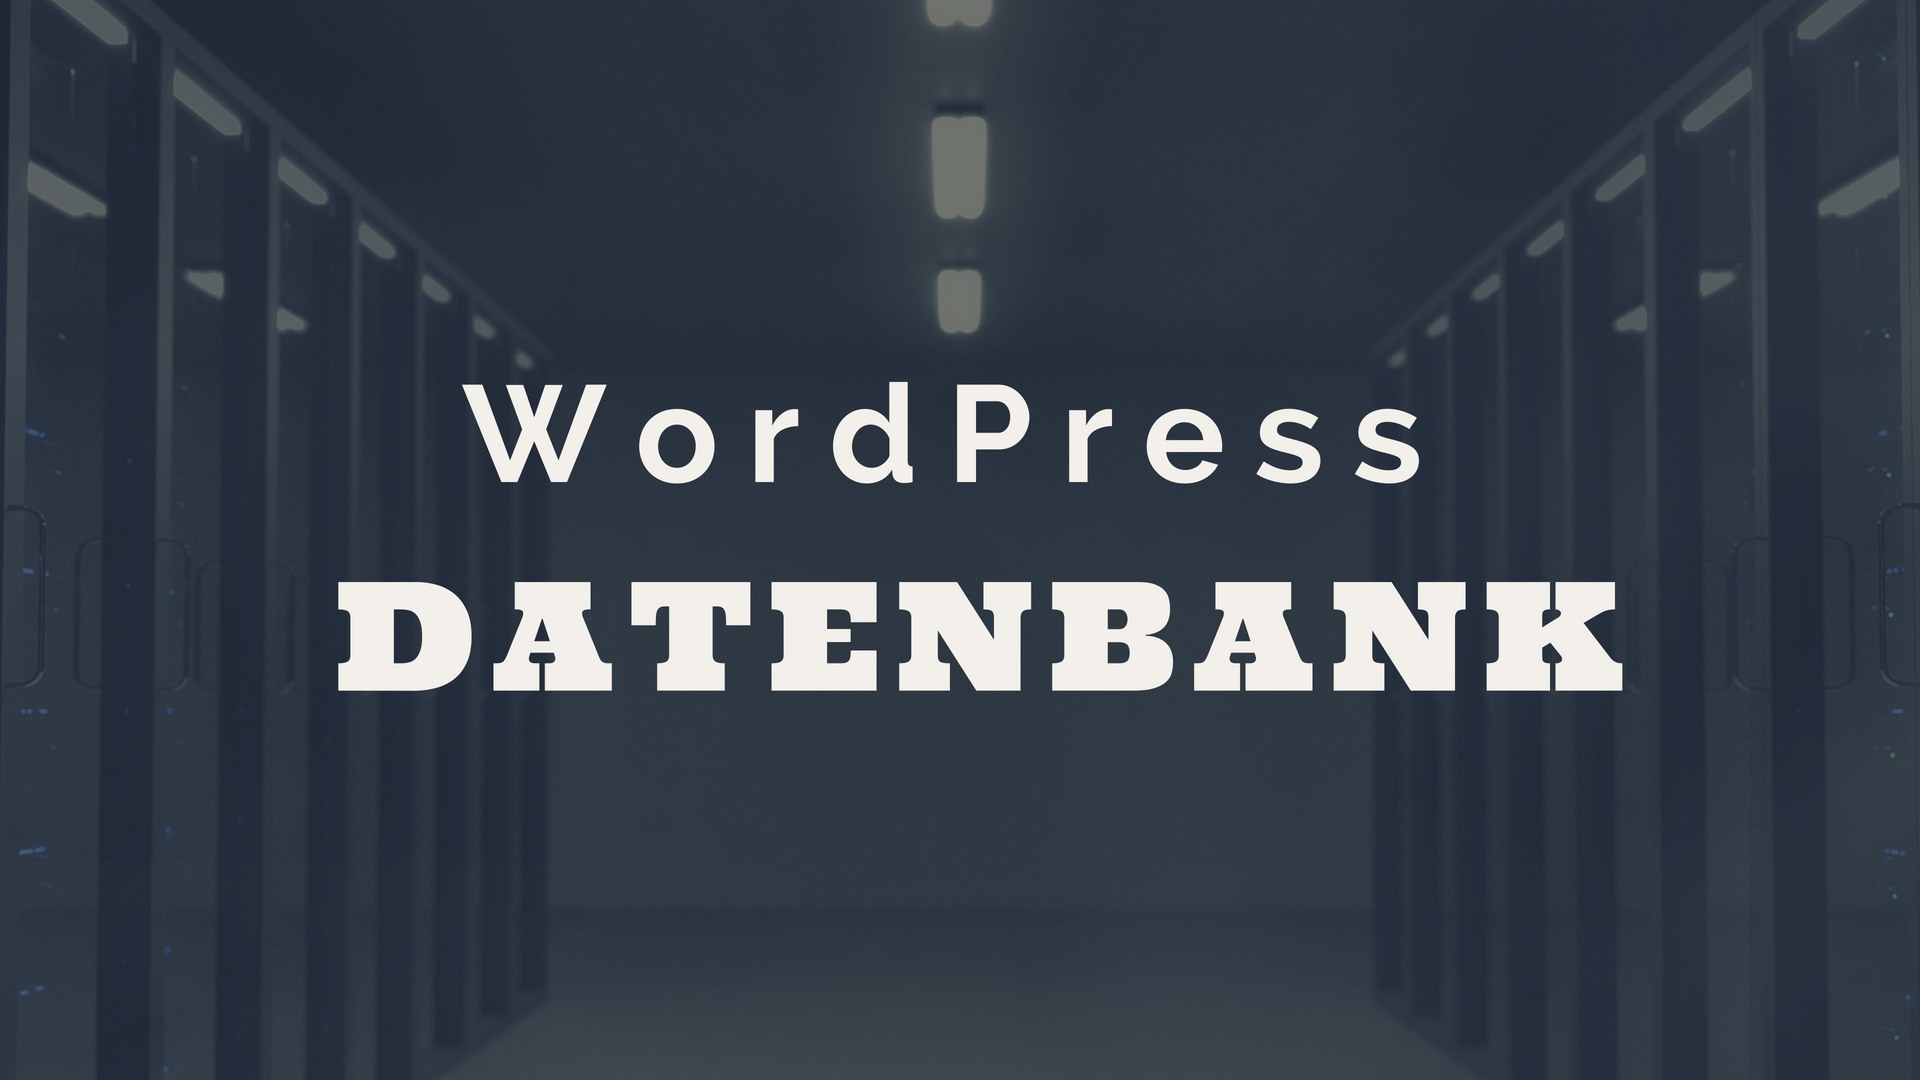 WordPress Datenbank